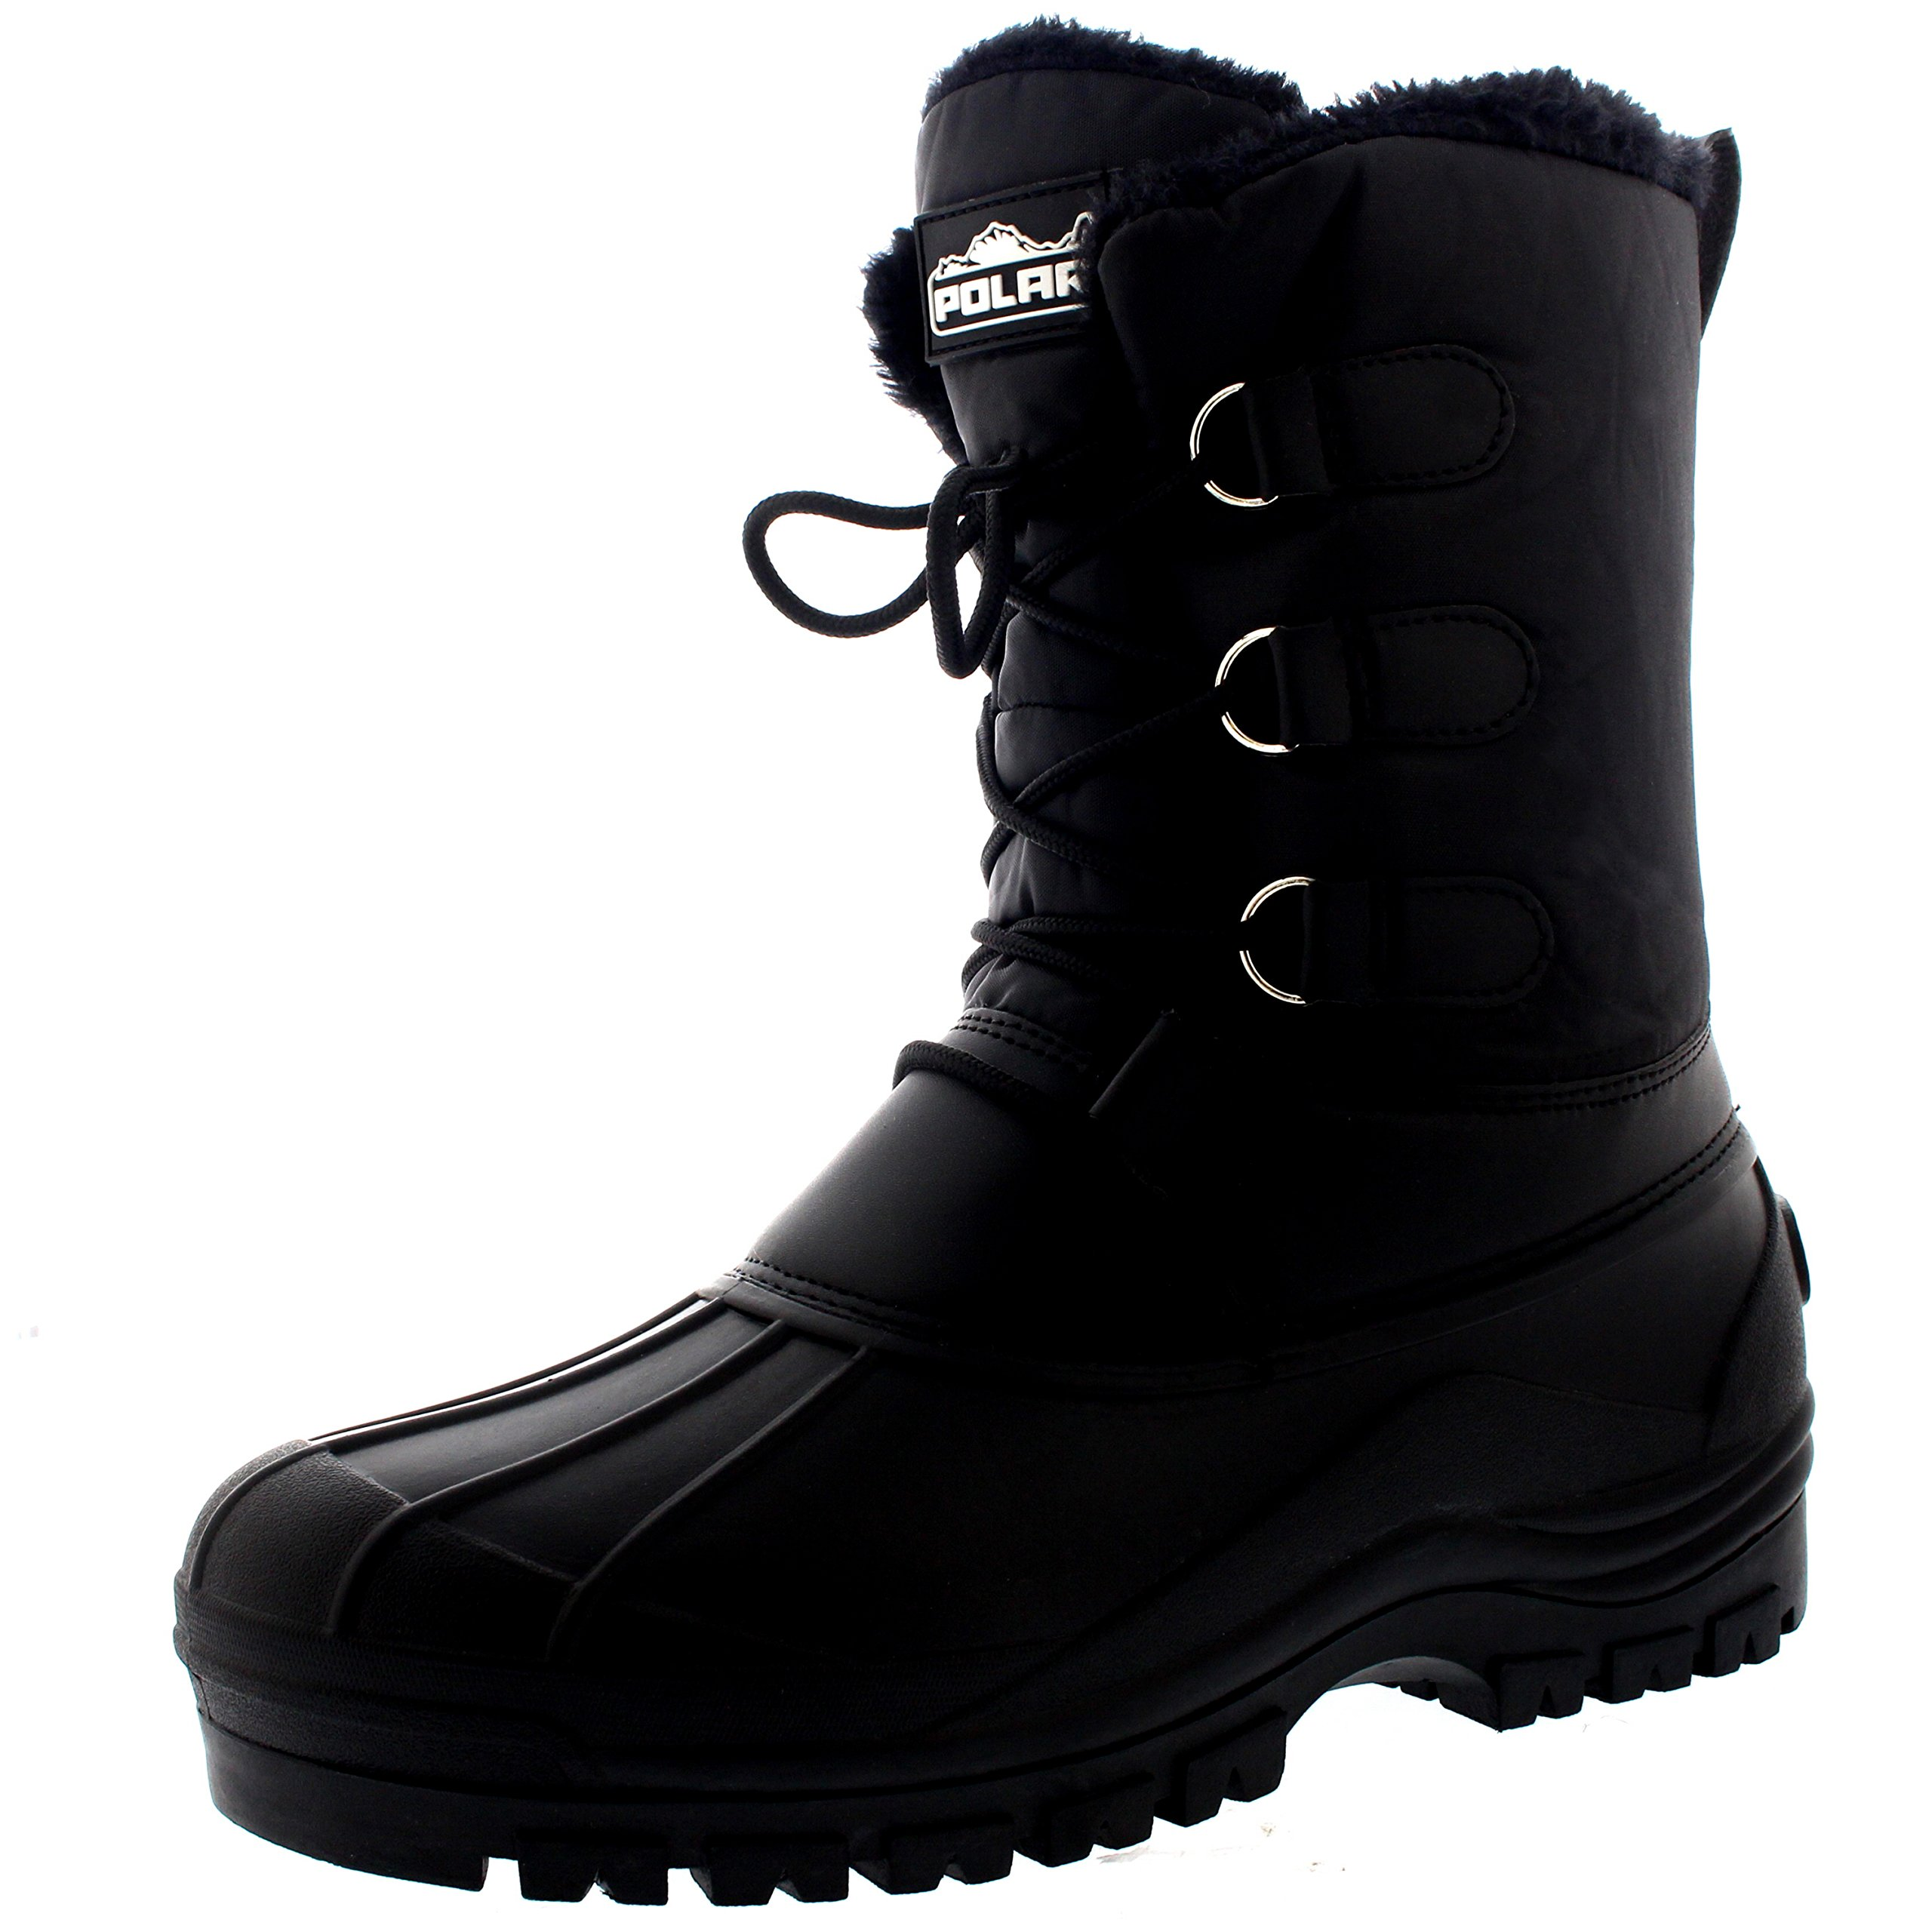 Mens Muck Lace Up Short Nylon Winter Snow Rain Lace Up Casual Duck Boots - 13 - BLK46 YC0141